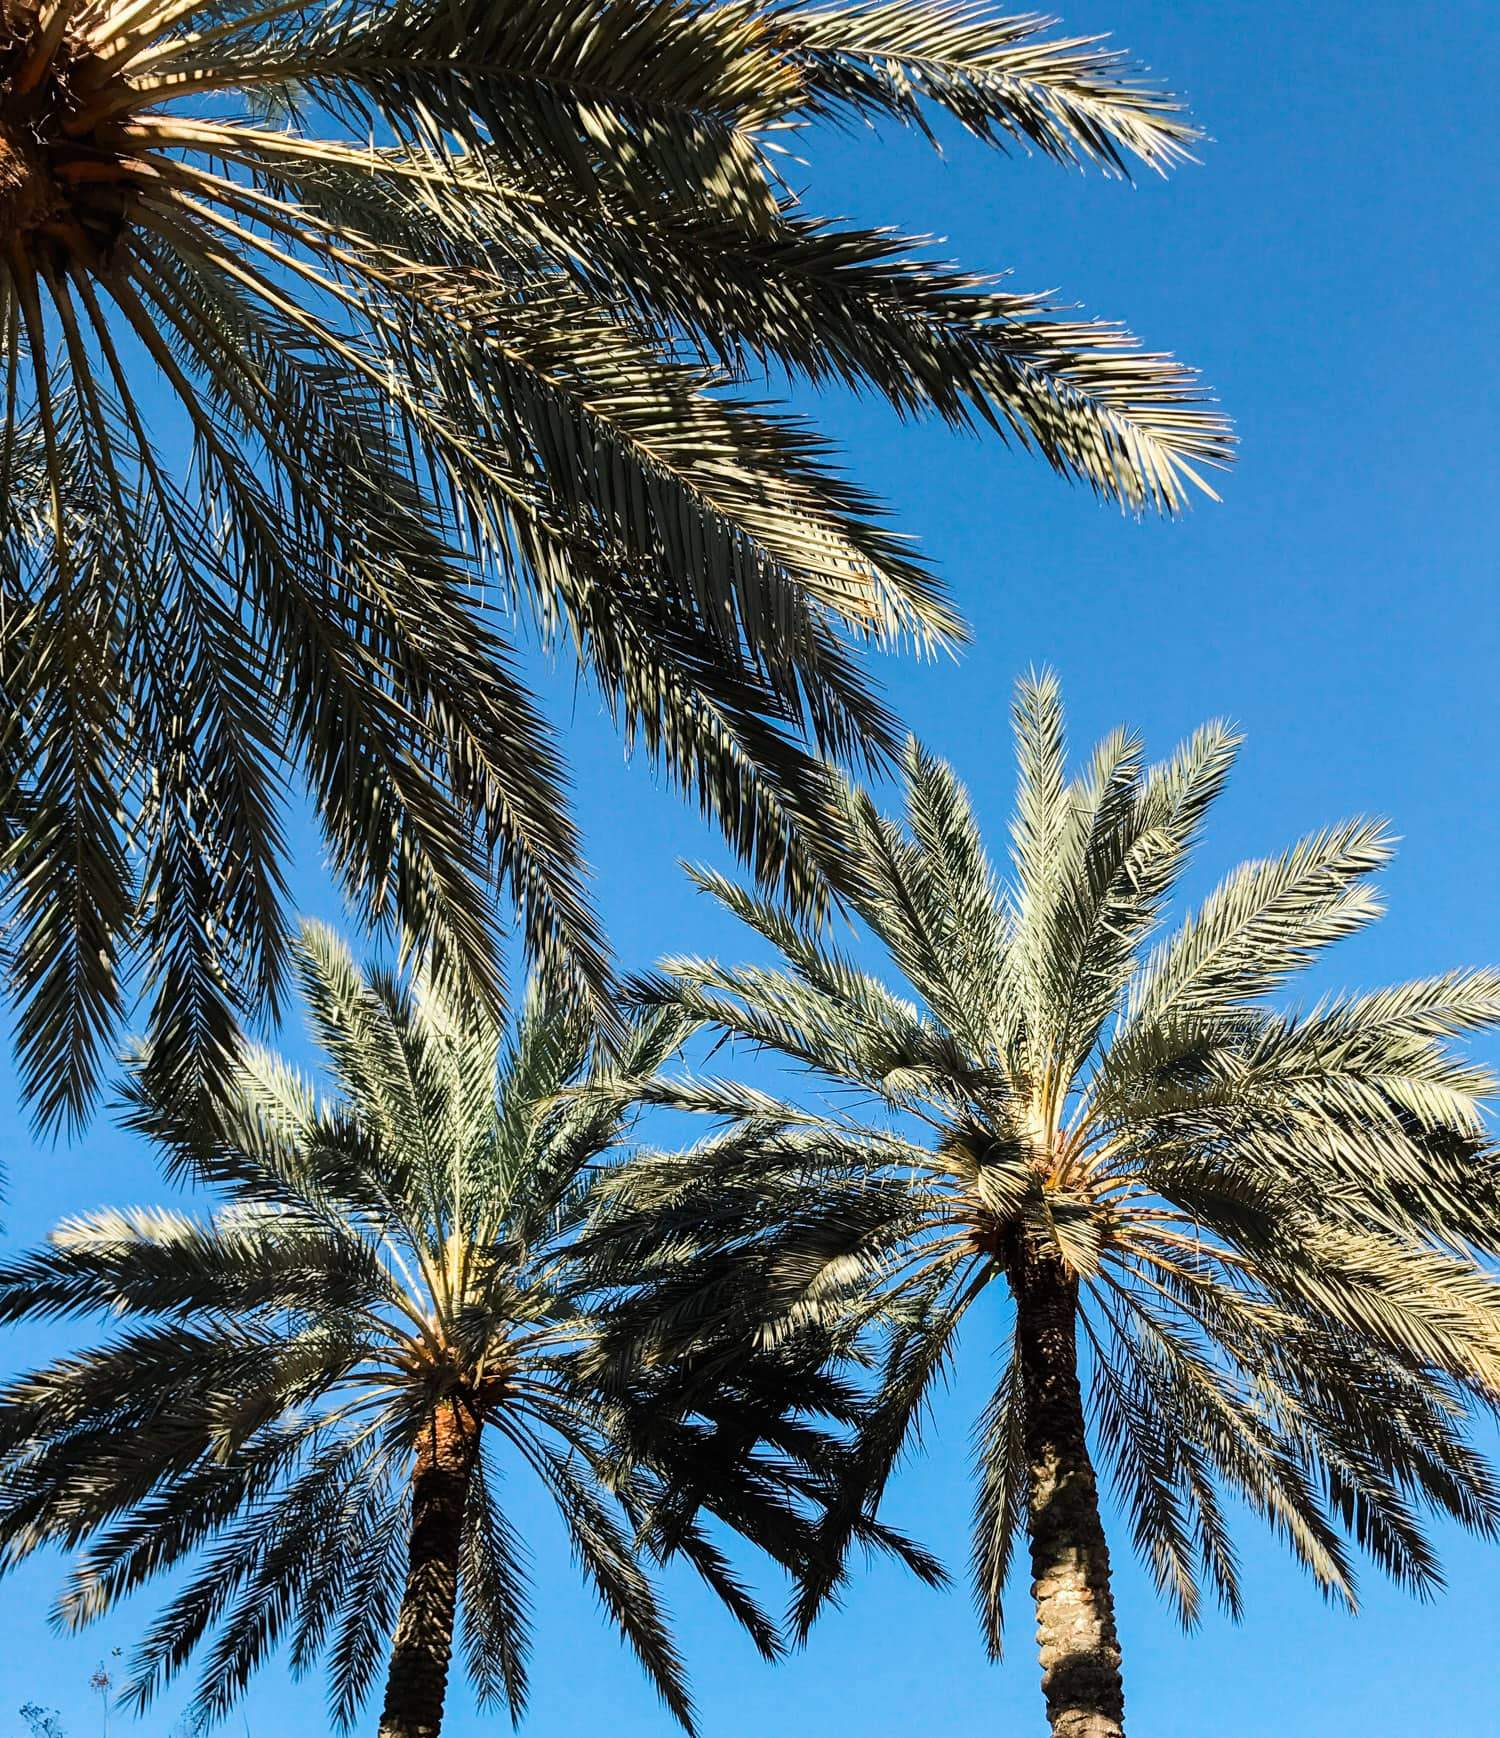 Nothing beats Florida palm trees! Planning a trip to Orlando? I've rounded up the top 10 things to do in Orlando, Florida, that are guaranteed to make your trip a success. Whether you're moving to Orlando or just headed in on vacation, you will LOVE this list of fun activities in Orlando by Florida travel blogger Ashley Brooke Nicholas #CORTatHome sponsored by CORT Furniture | affordable travel tips, orlando vacation tips, vacation tips, orlando eye, leu gardens, universal studios, disney